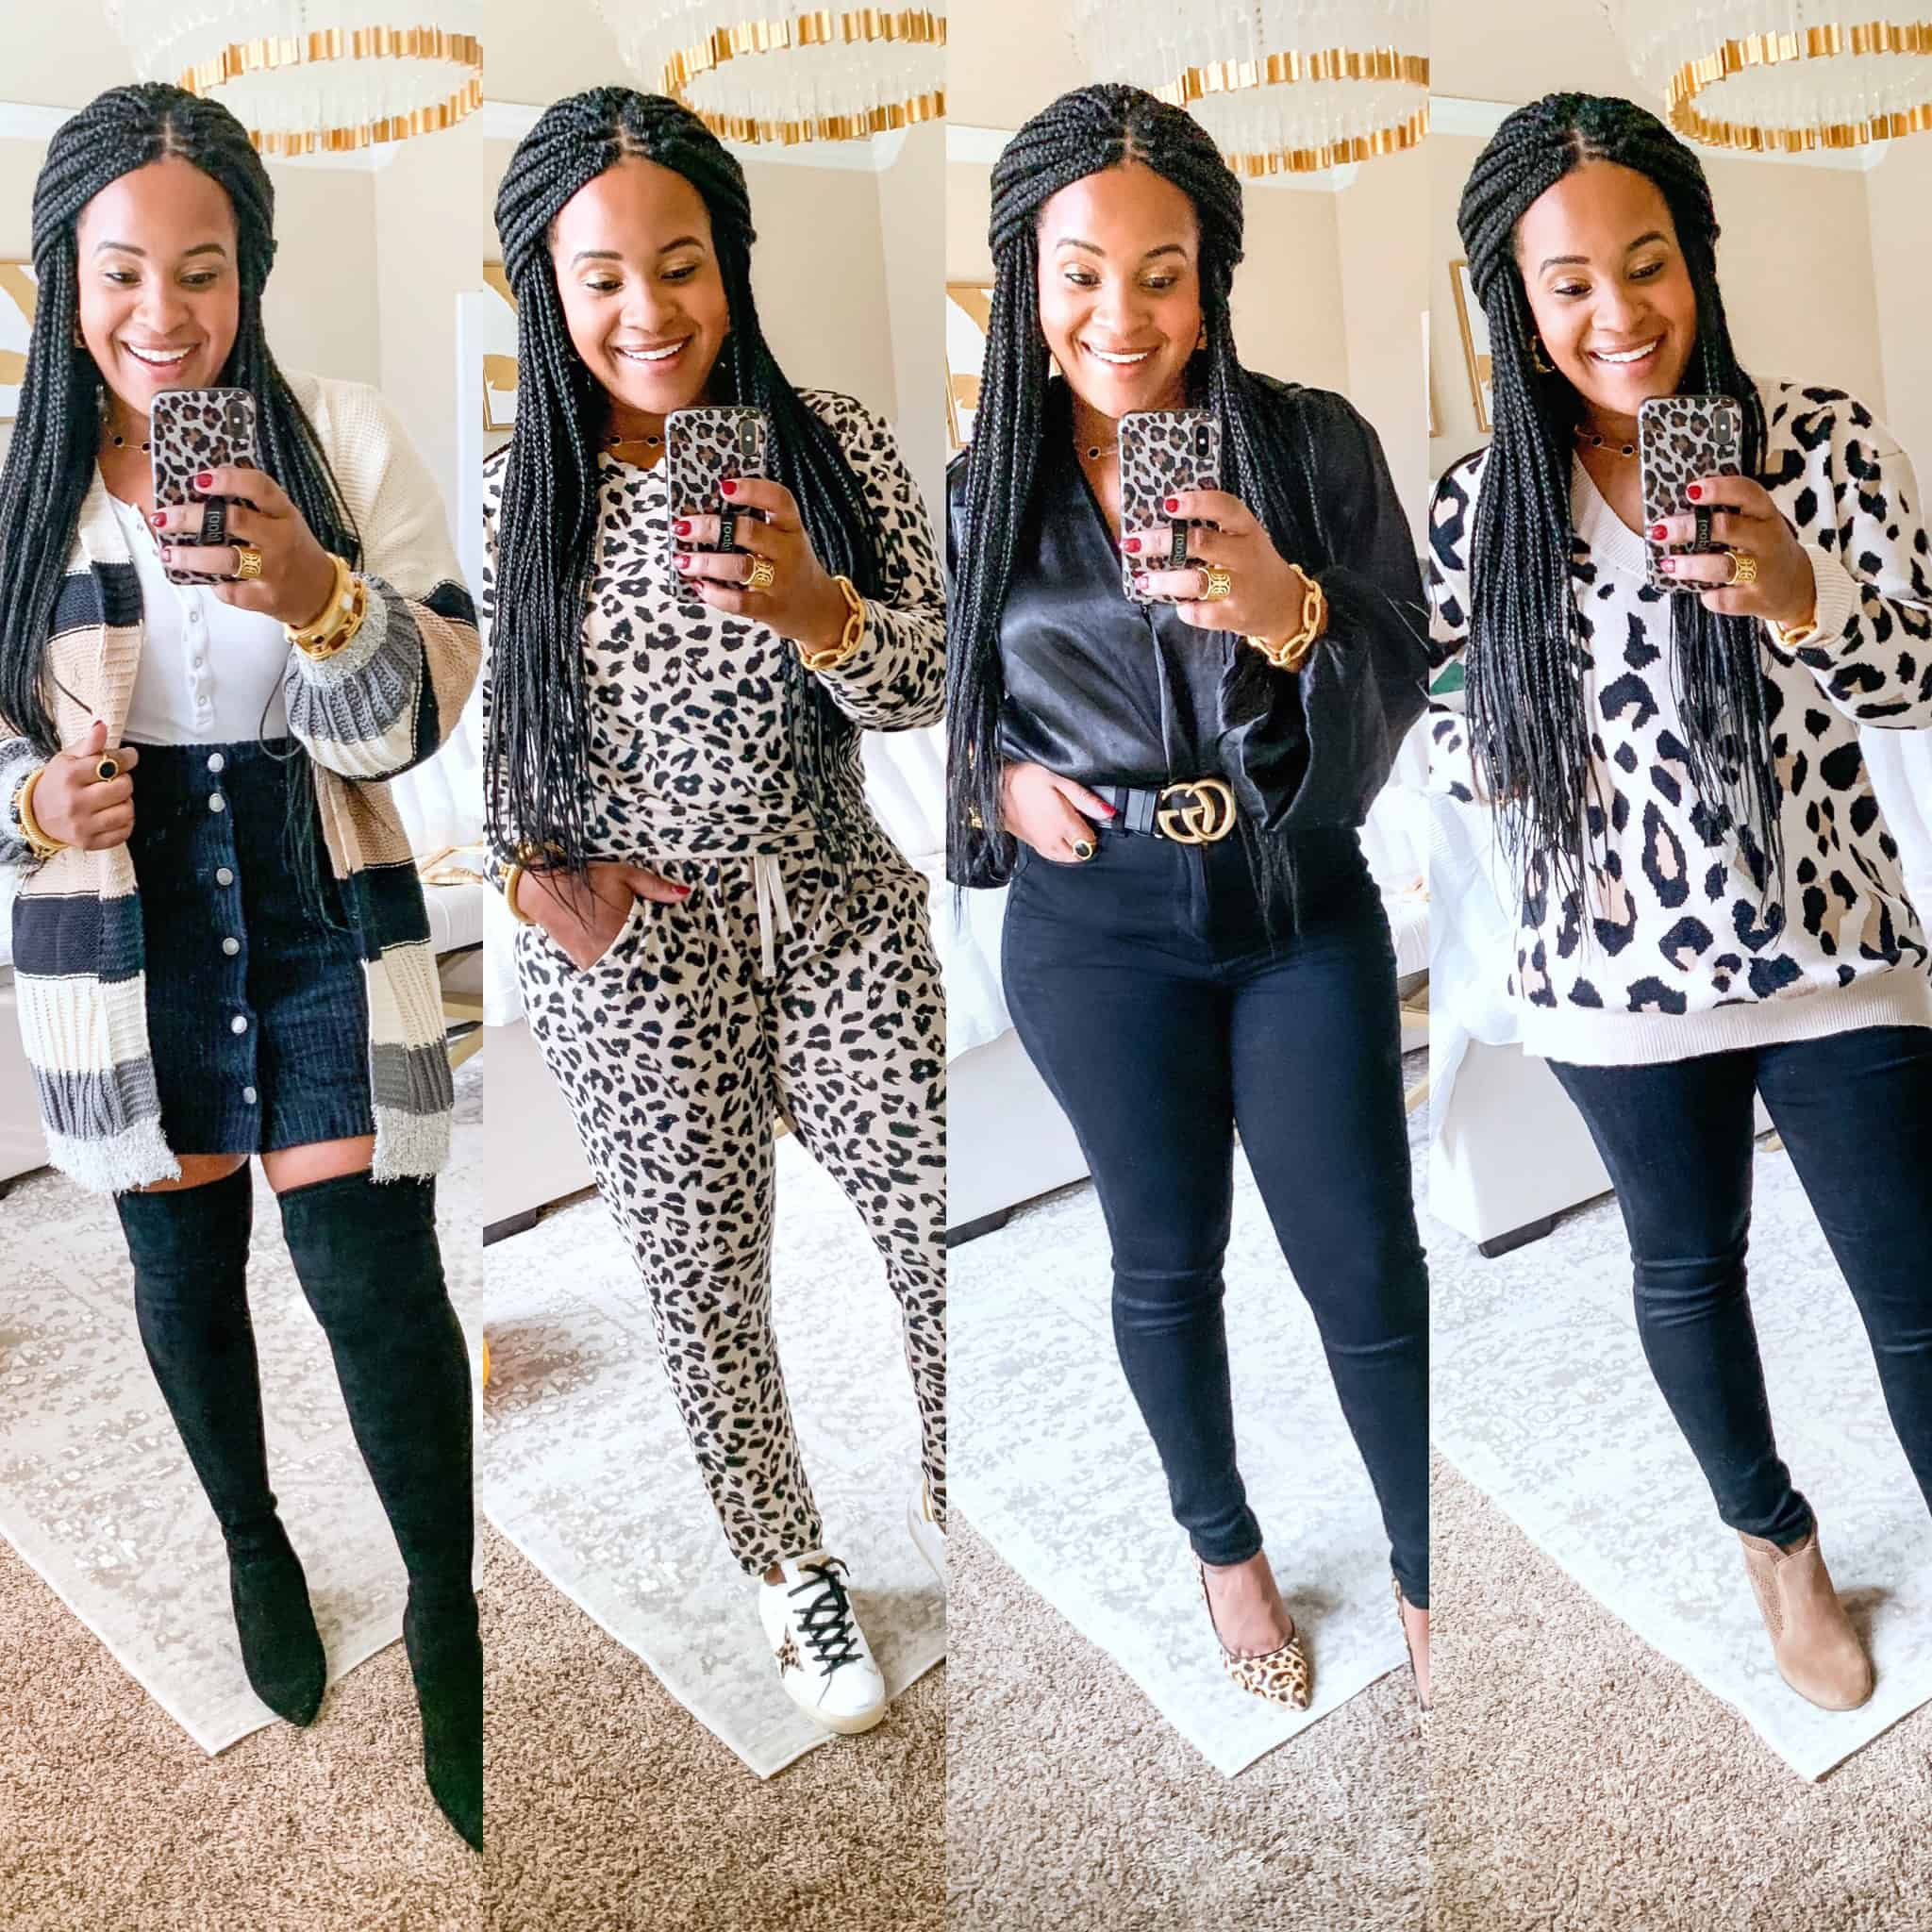 Red Dress Boutique Try On Fall 2019 by popular US fashion blog, Glamorous Versatility: image of a woman wearing 4 different outfits from the Red Dress Boutique.